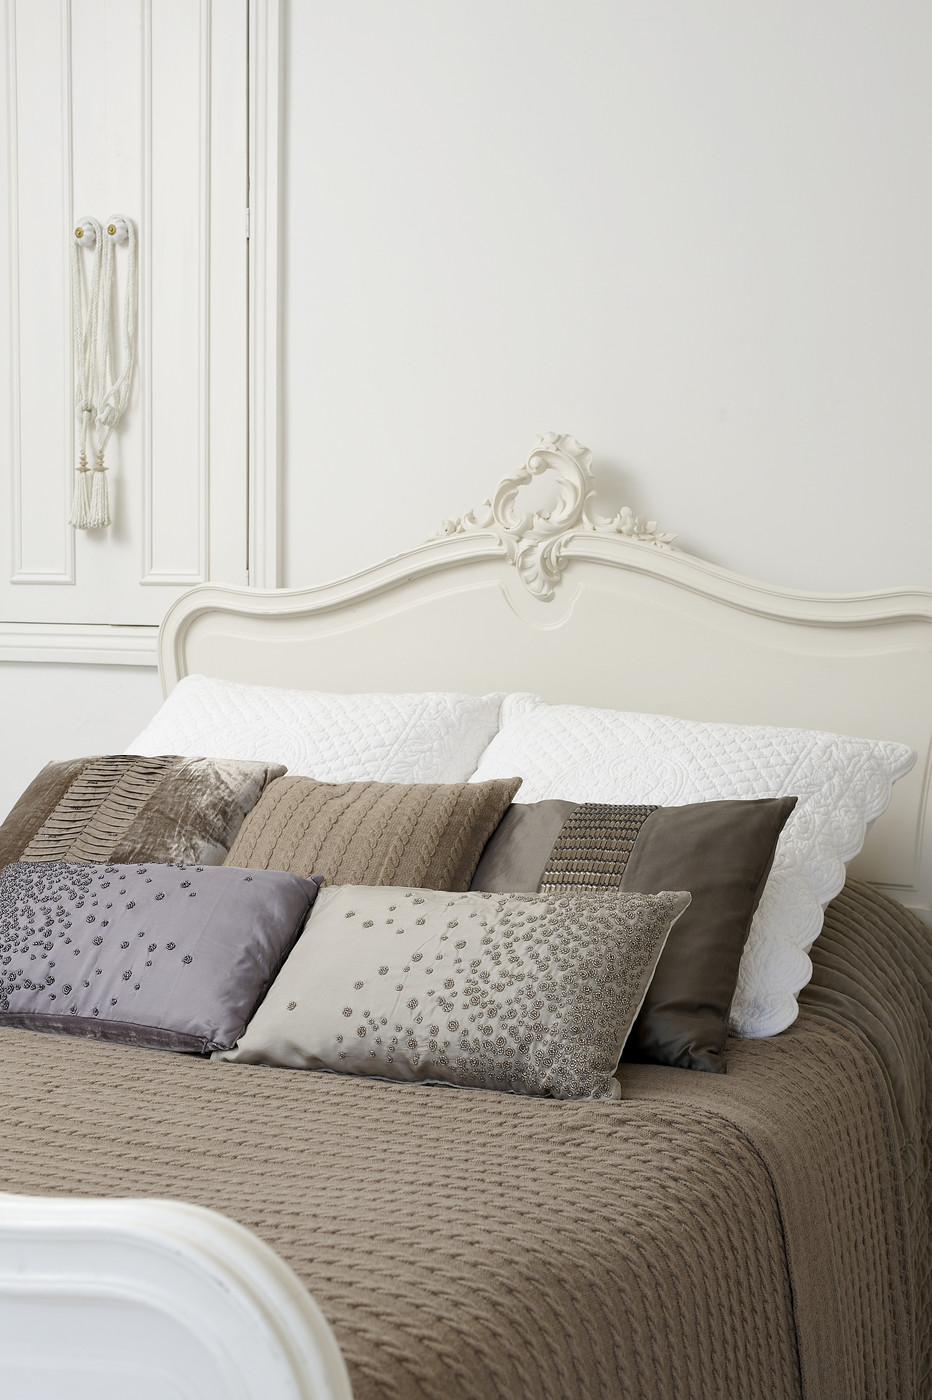 Taupe bedding offsets white walls